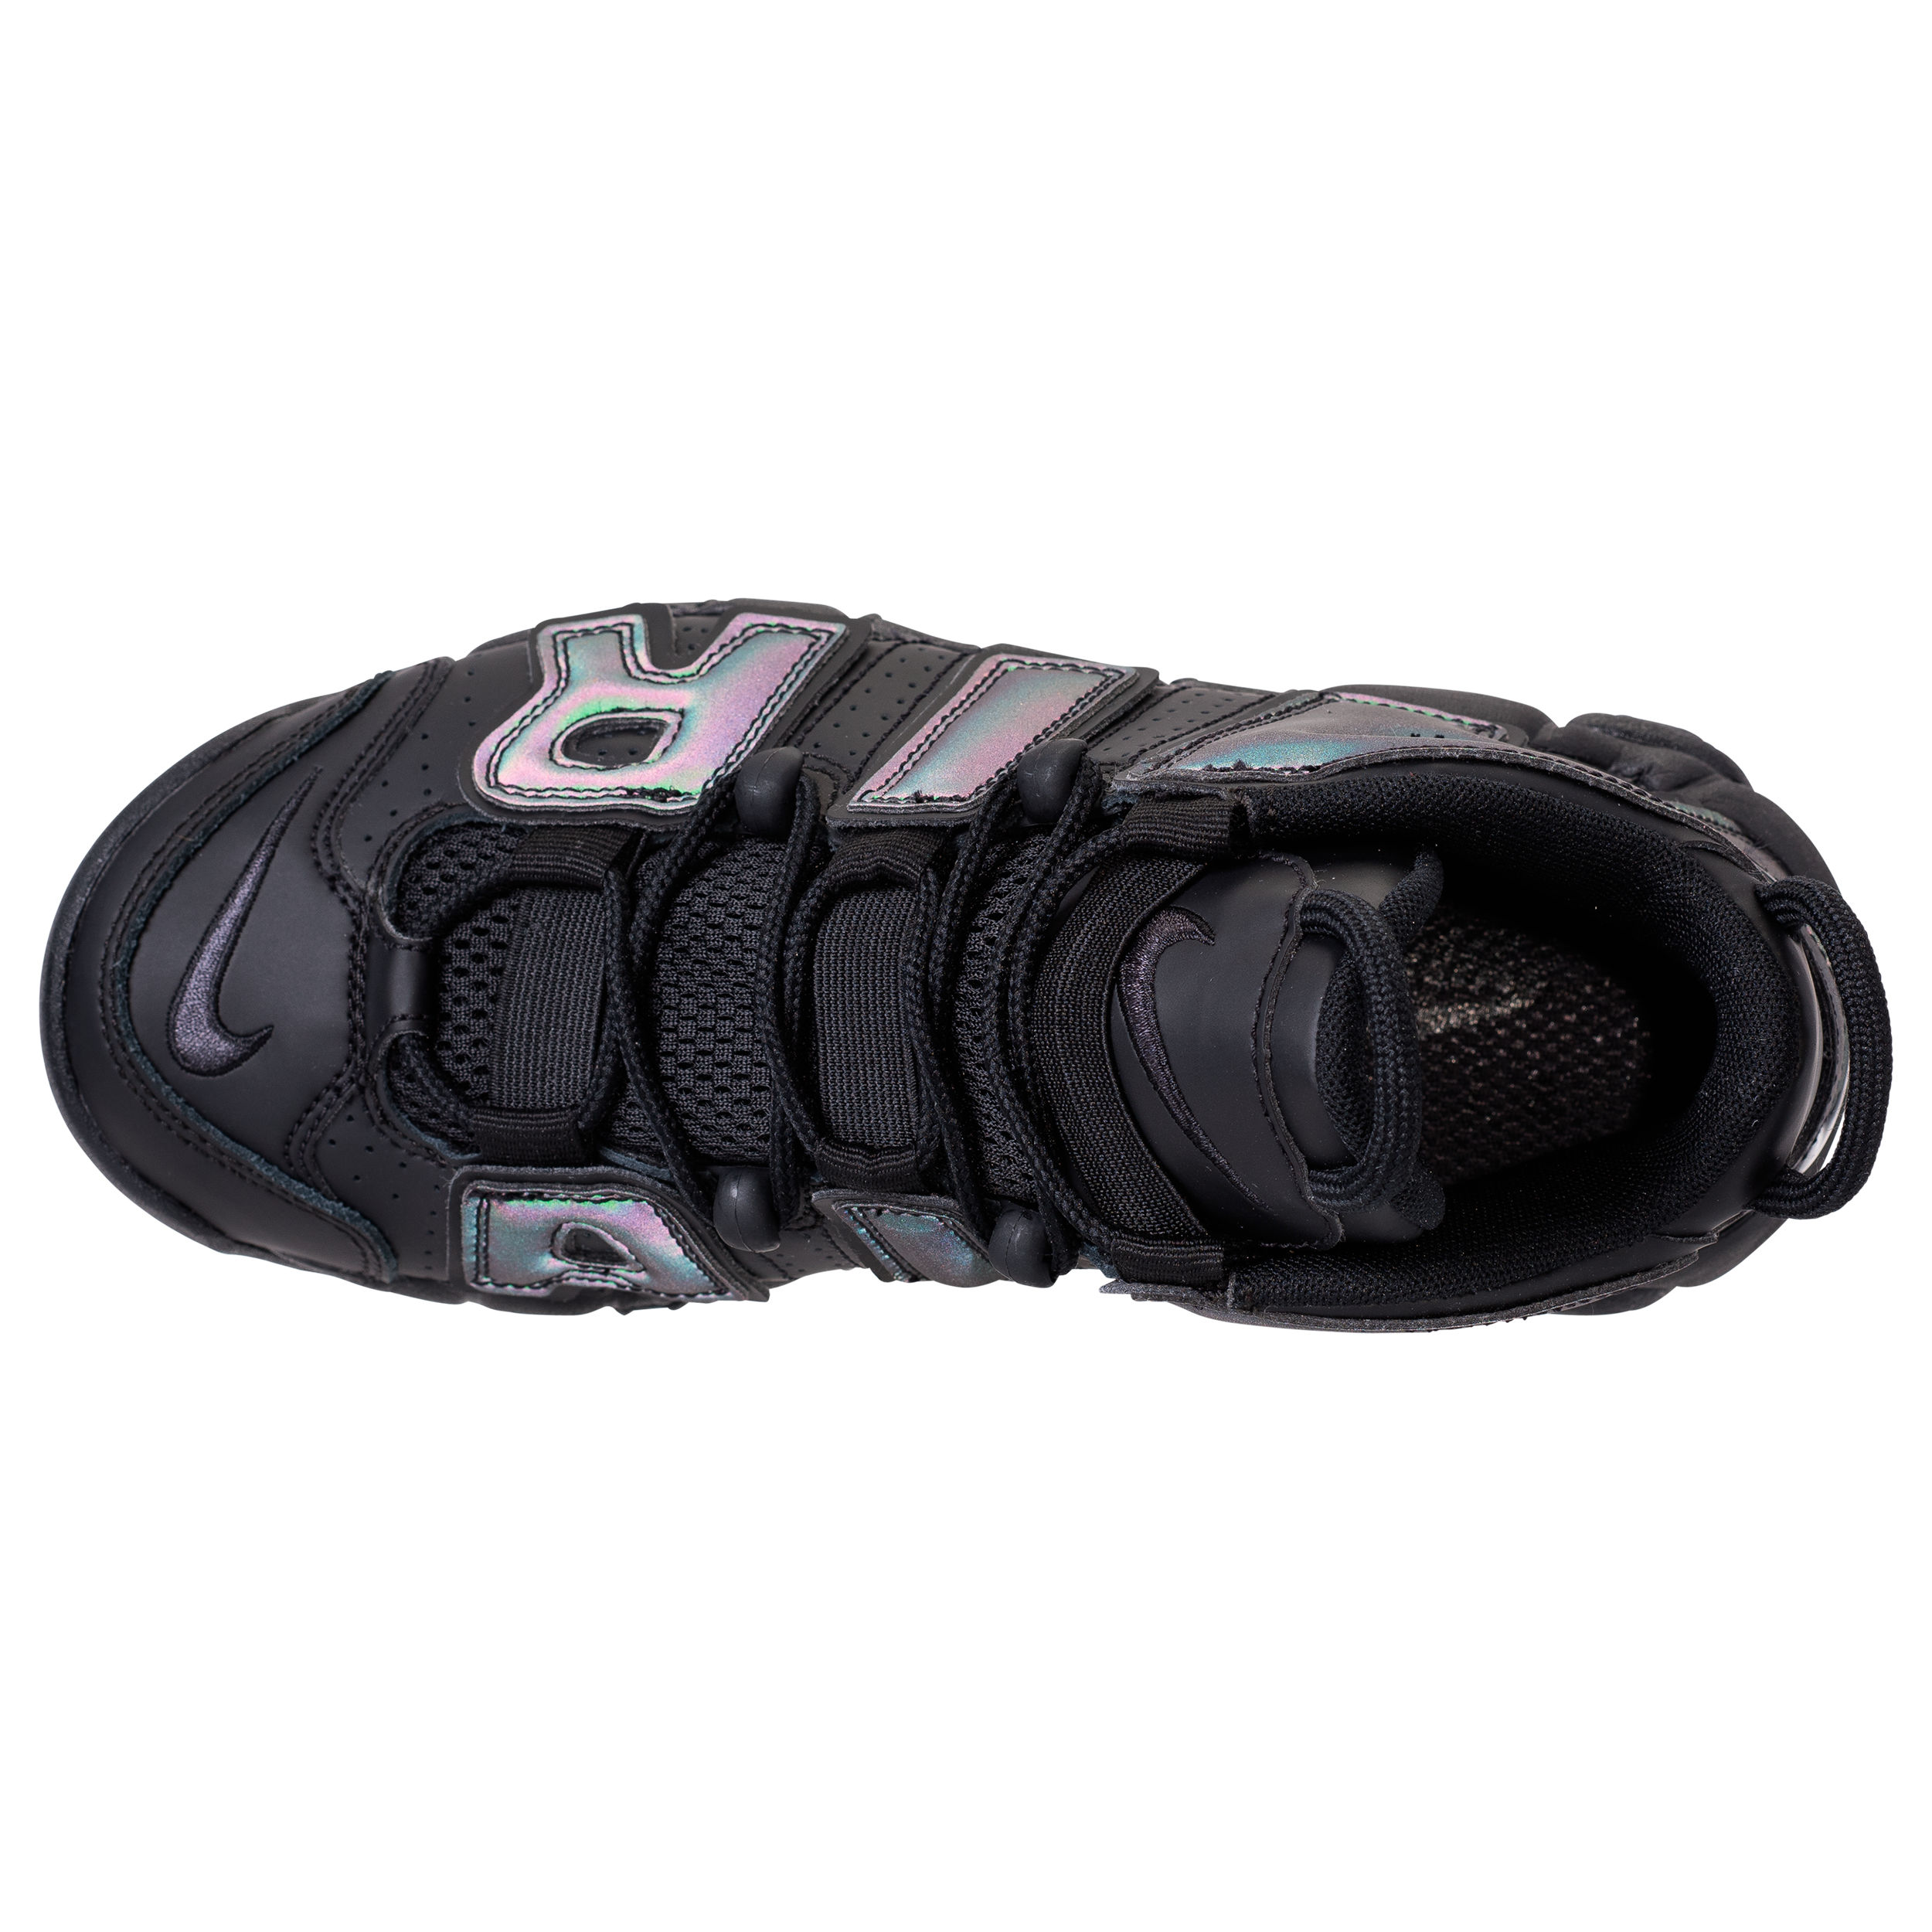 nike air more uptempo reflective iridescent 6